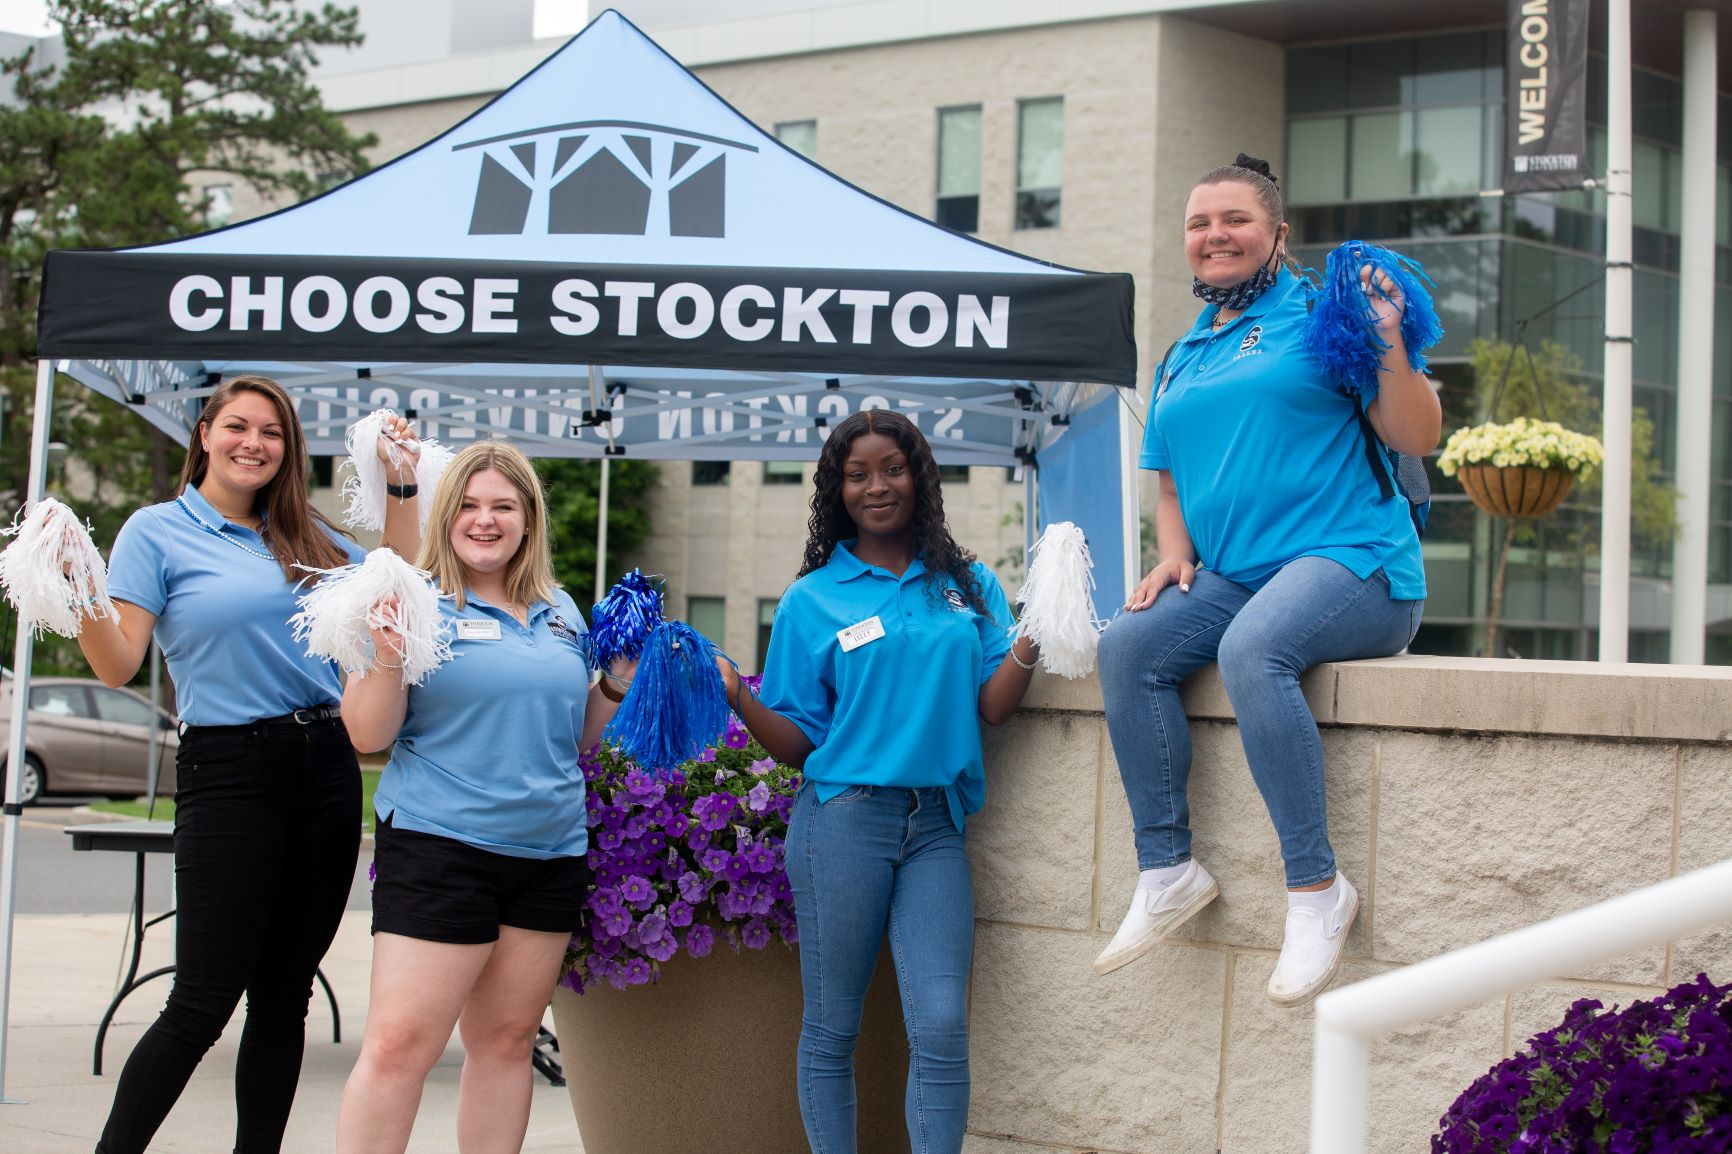 Stockton Admissions Ambassadors and T.A.L.O.N.S. greeted new students as they arrived on campus for Nest Fest, helping them feel right at home the moment they step foot on campus.